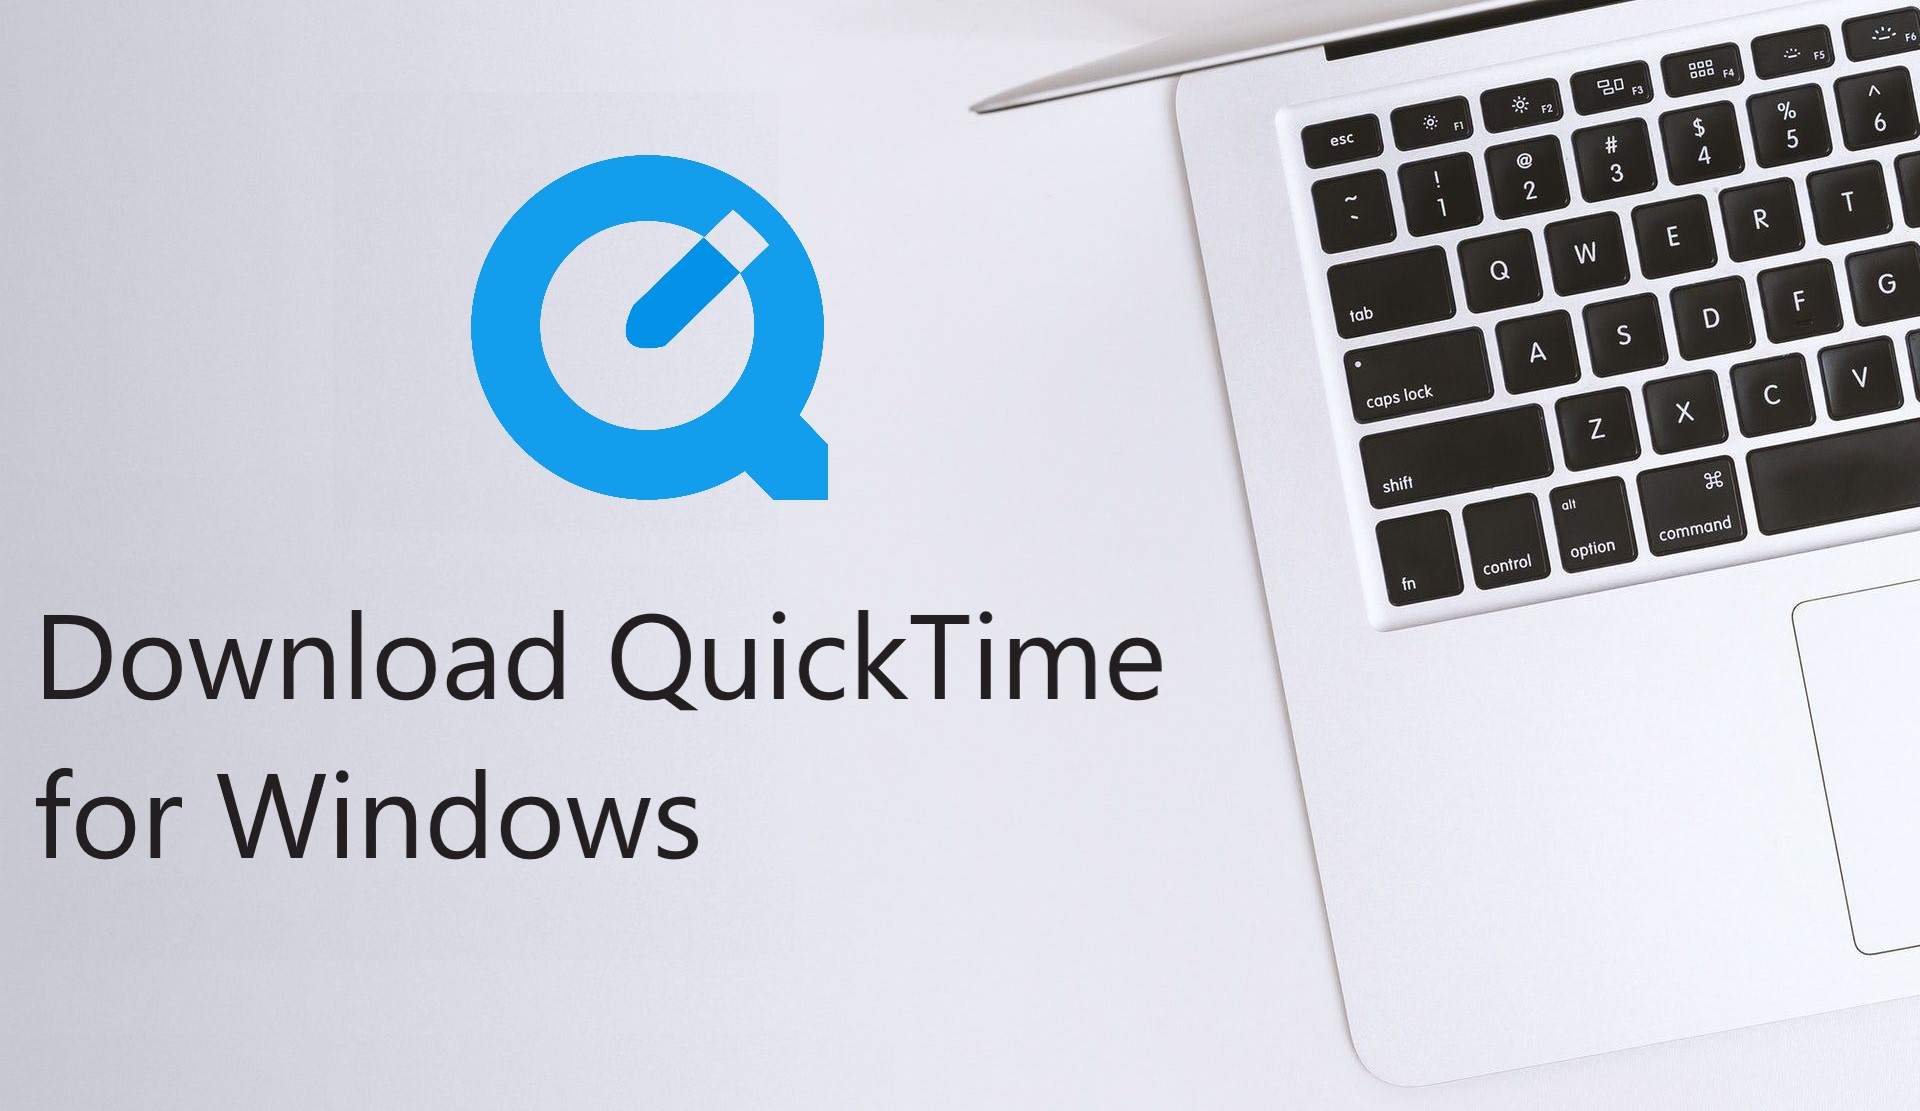 Download QuickTime for Windows 7, 8.1, 10